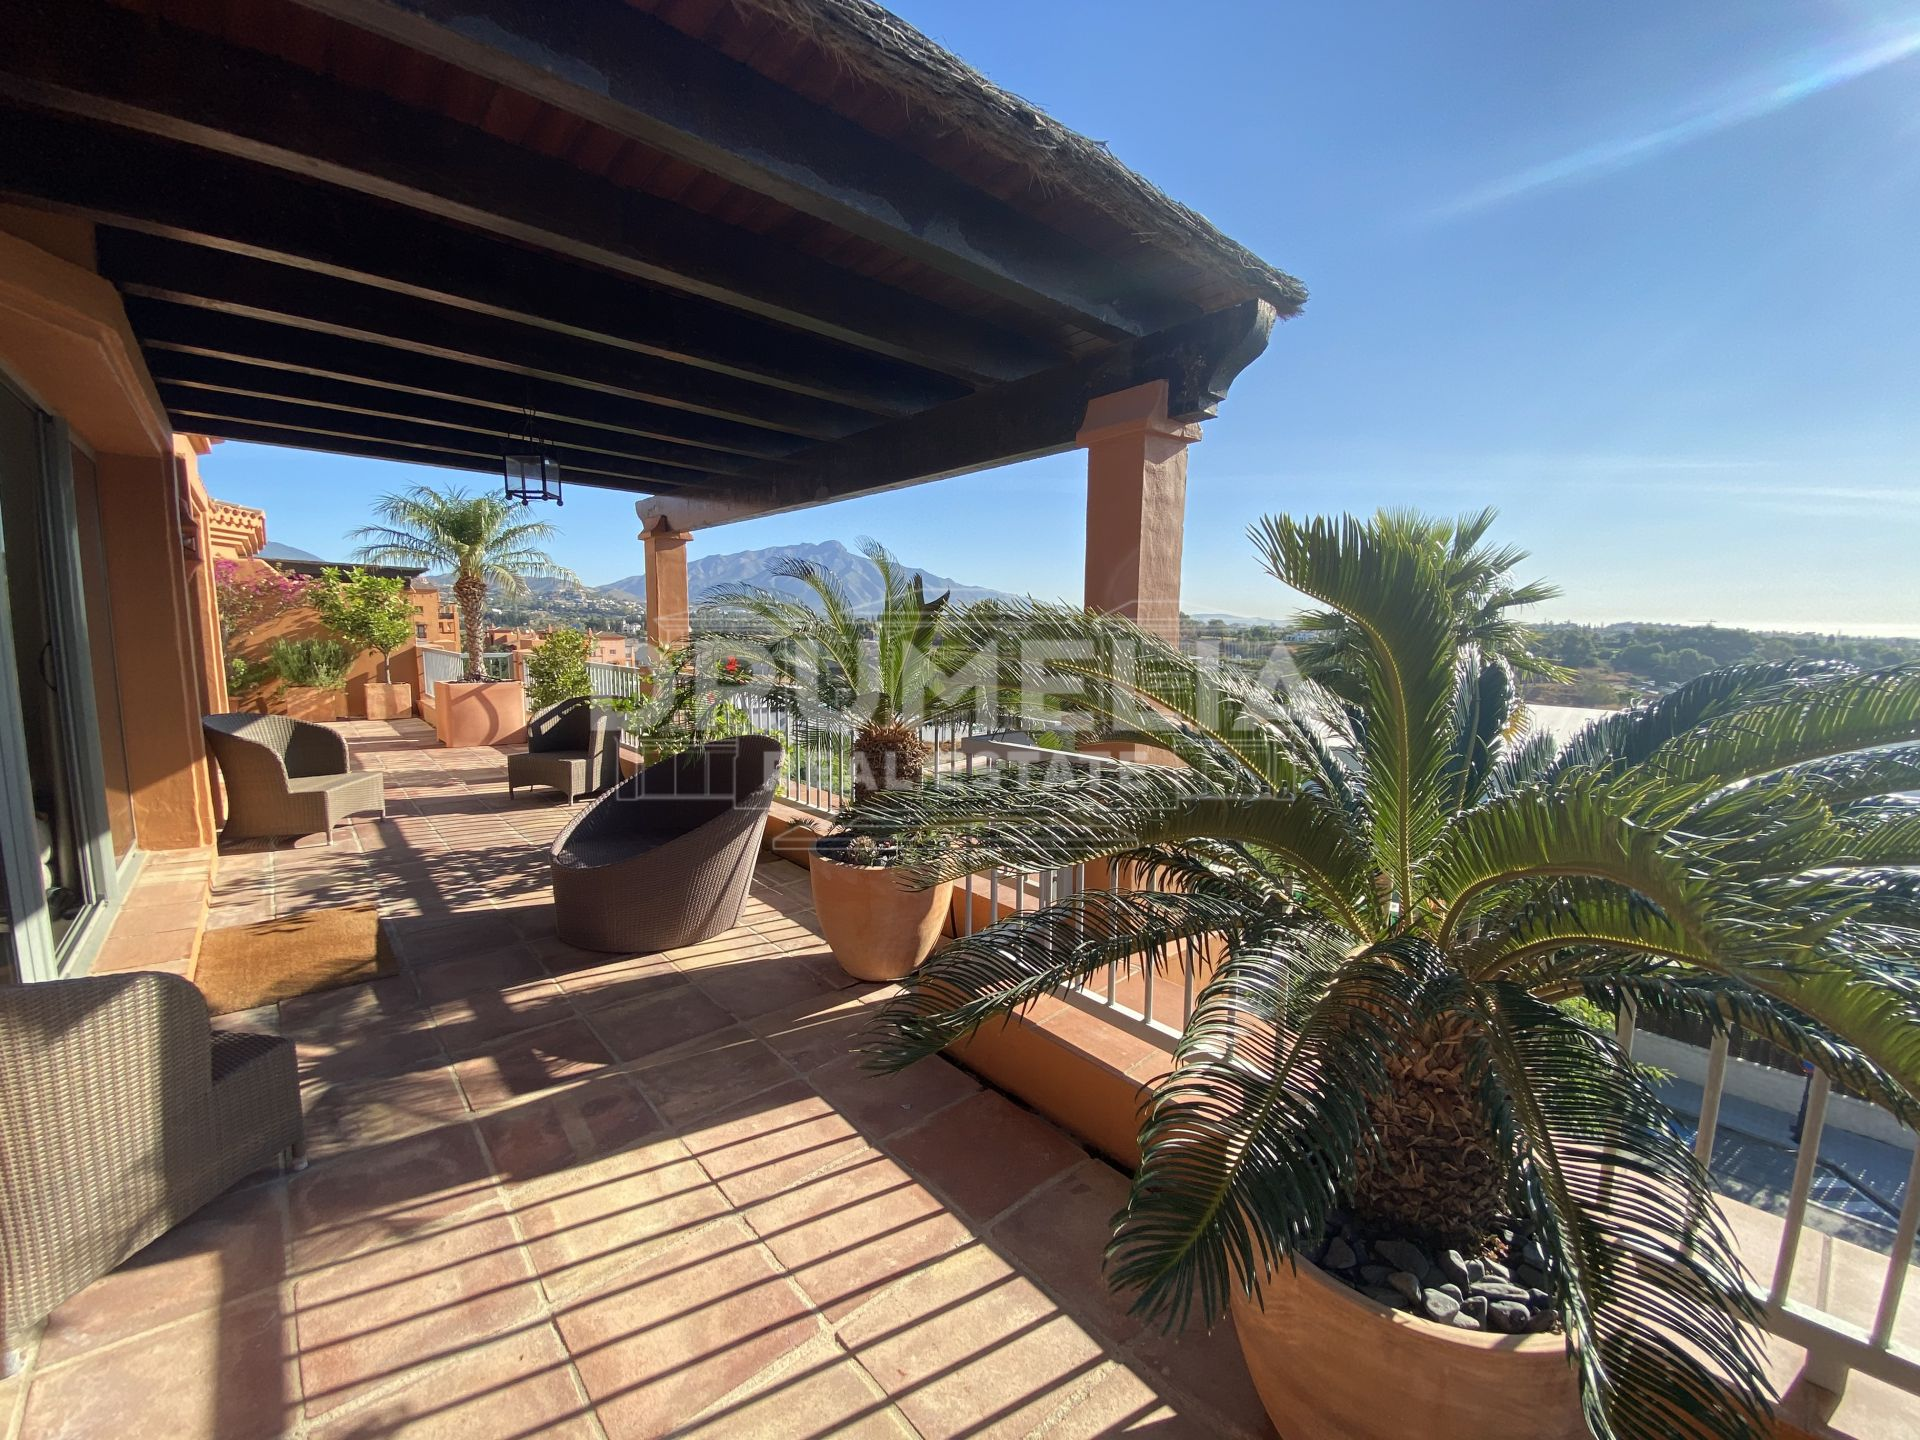 Benahavis, Fabulous Penthouse in Golf- Resort- Style Benatalaya, Benahavis